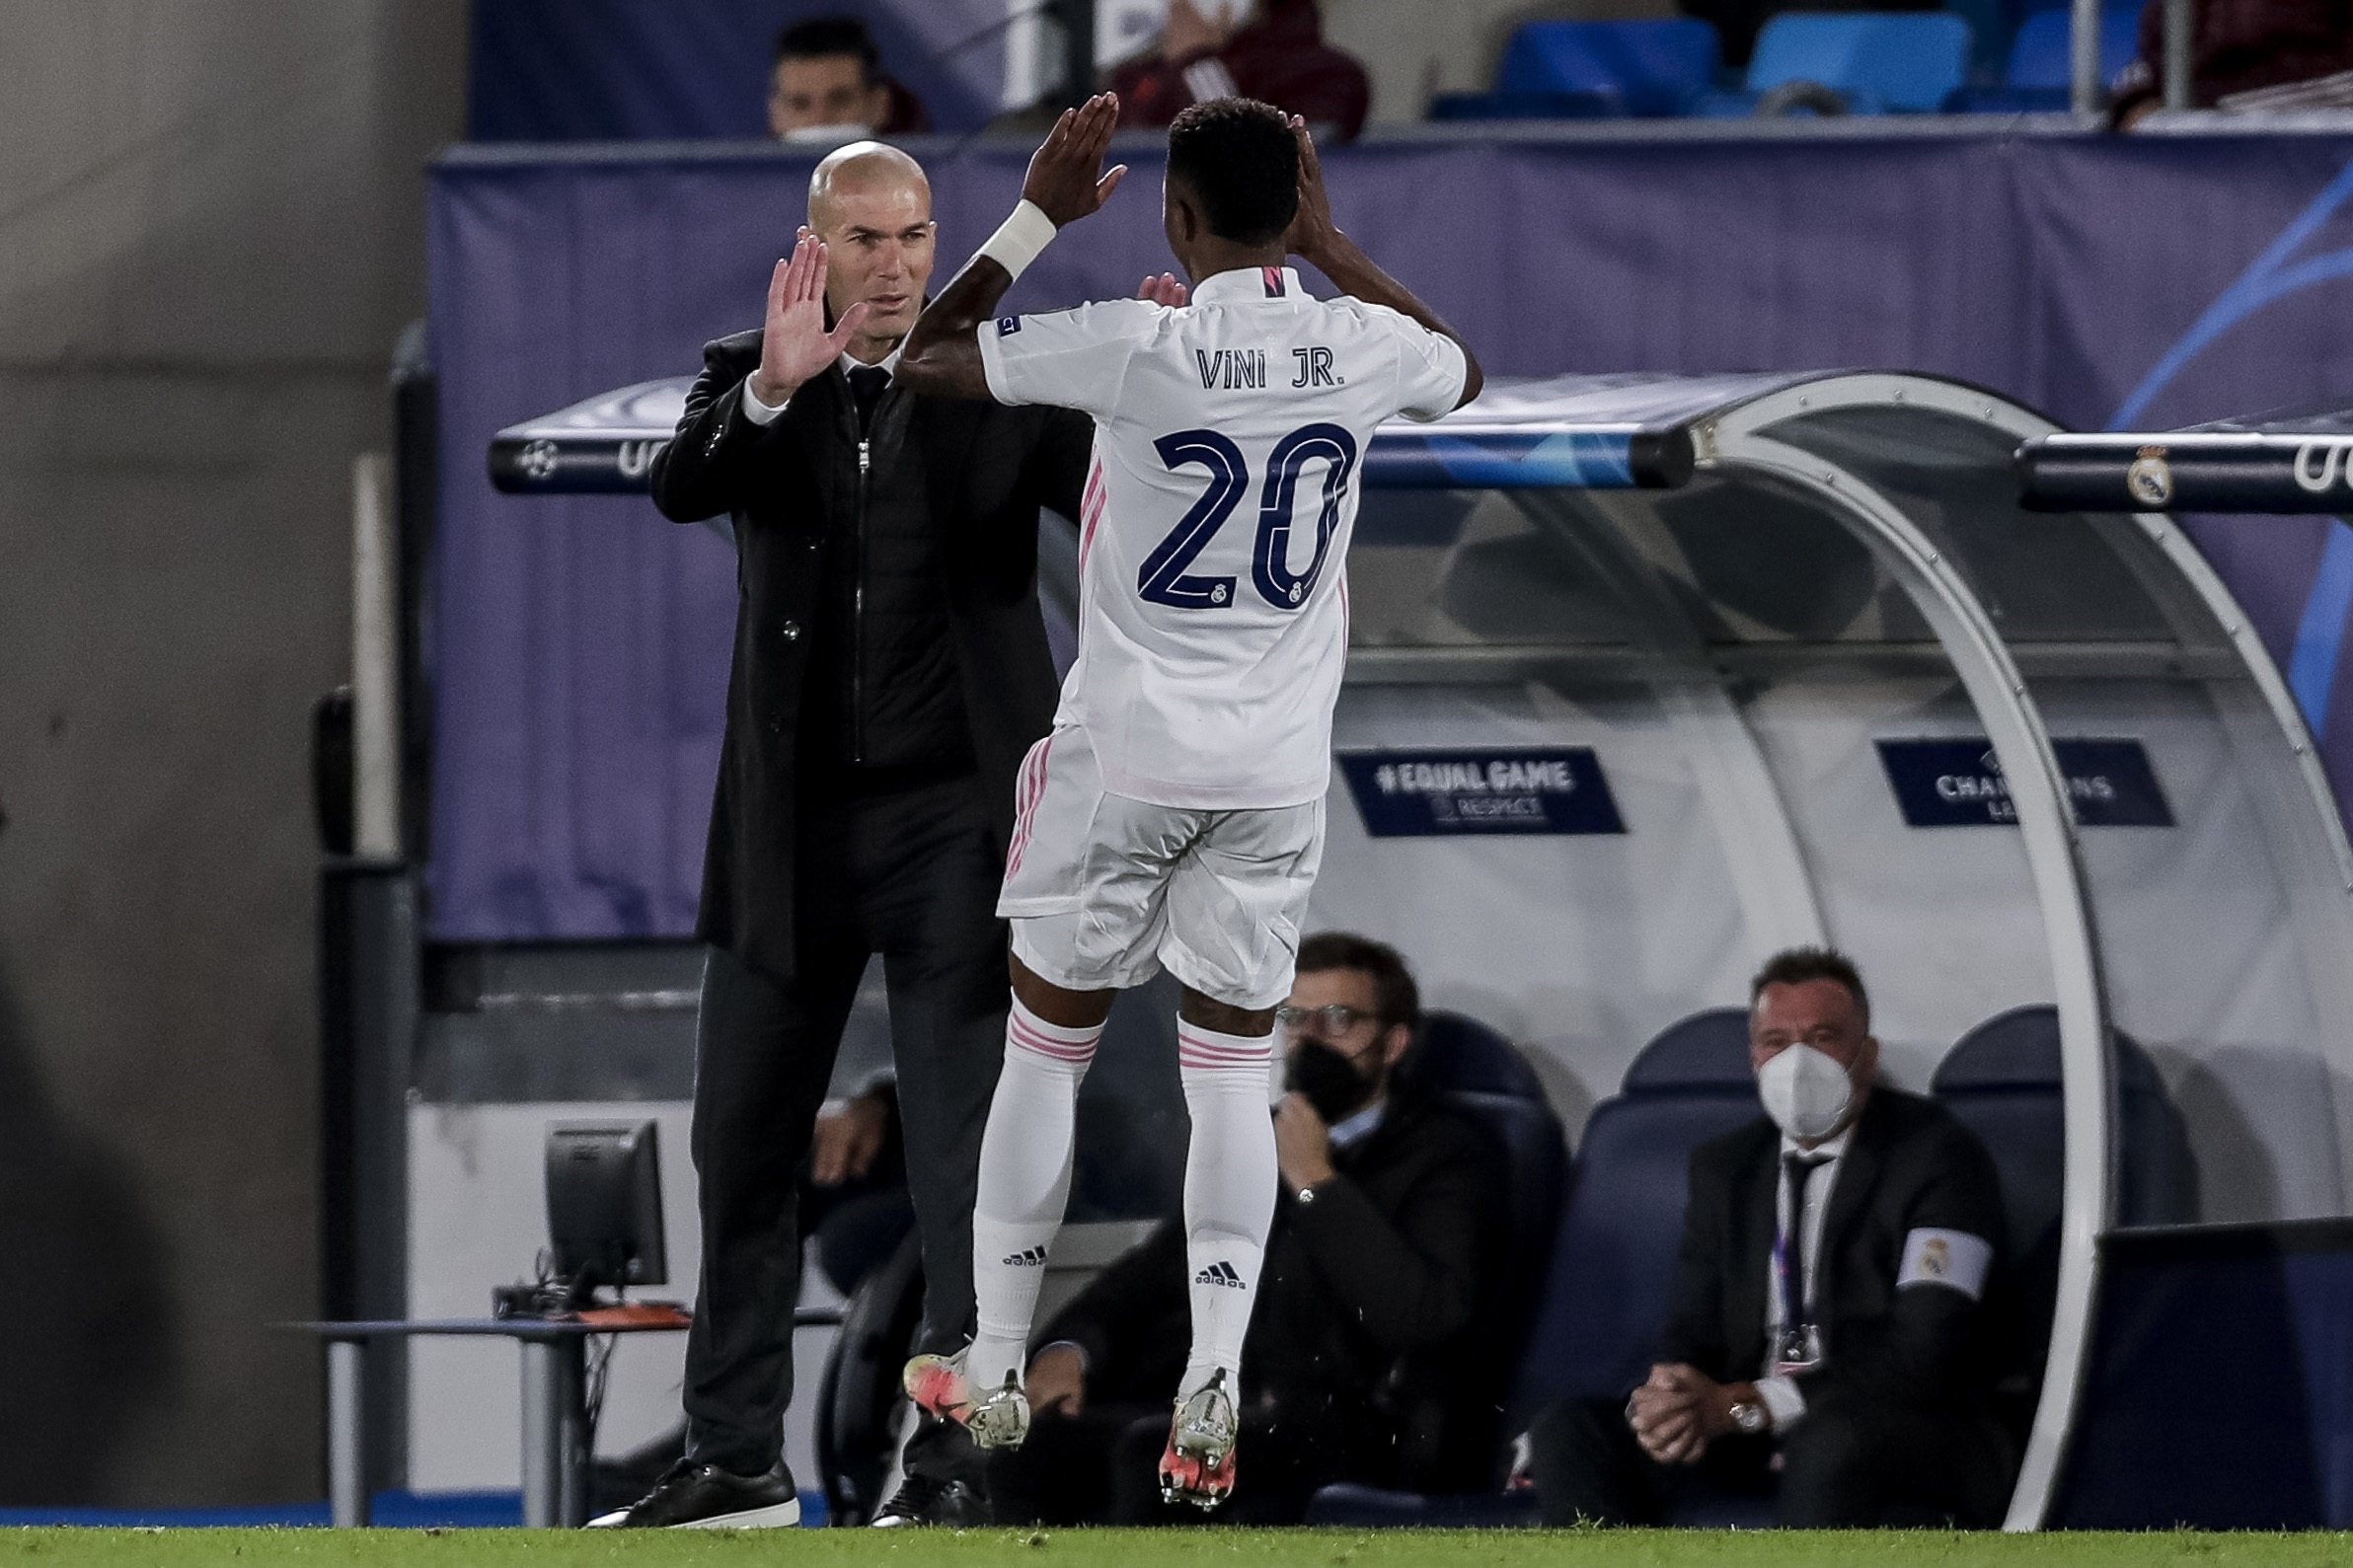 Real Madrid's Vinicius Junior (R) is congratulated by Real Madrid's head coach Zinedine Zidane after scoring during the Champions League quarterfinal first leg, football match between Real Madrid and Liverpool at the Alfredo di Stefano stadium in Madrid, Spain, Tuesday, April 6, 2021. (AP Photo)